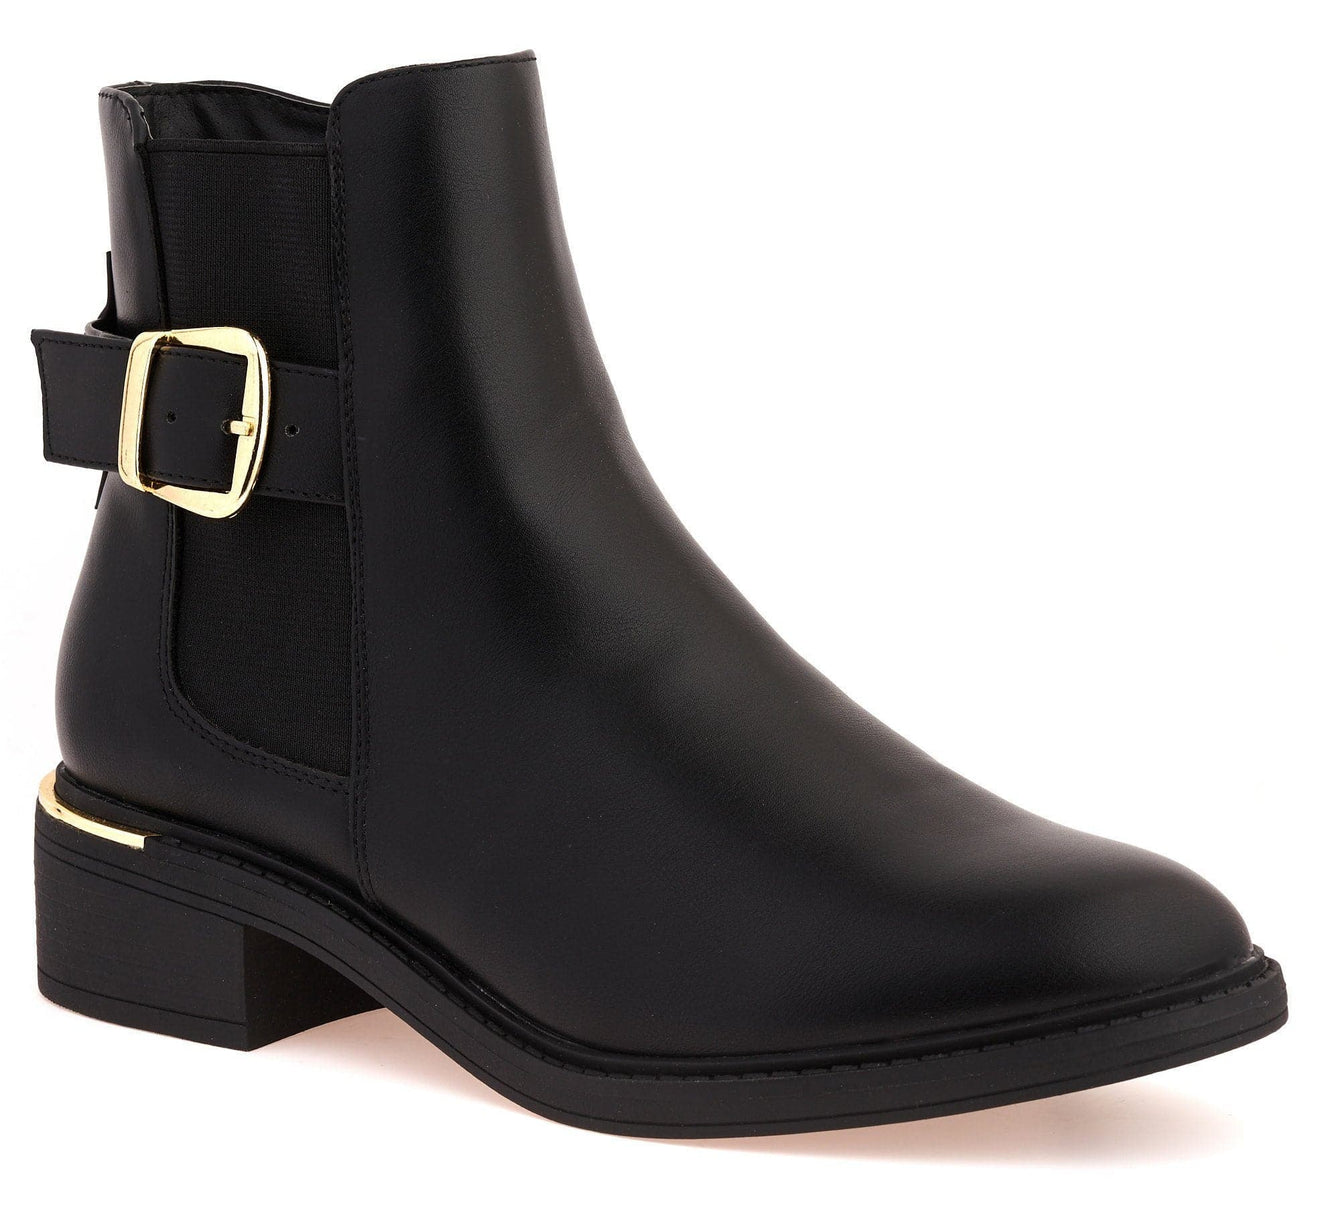 Zimie Gold Heel Trim & Buckle Ankle Boot in Black Matt Boots Miss Diva